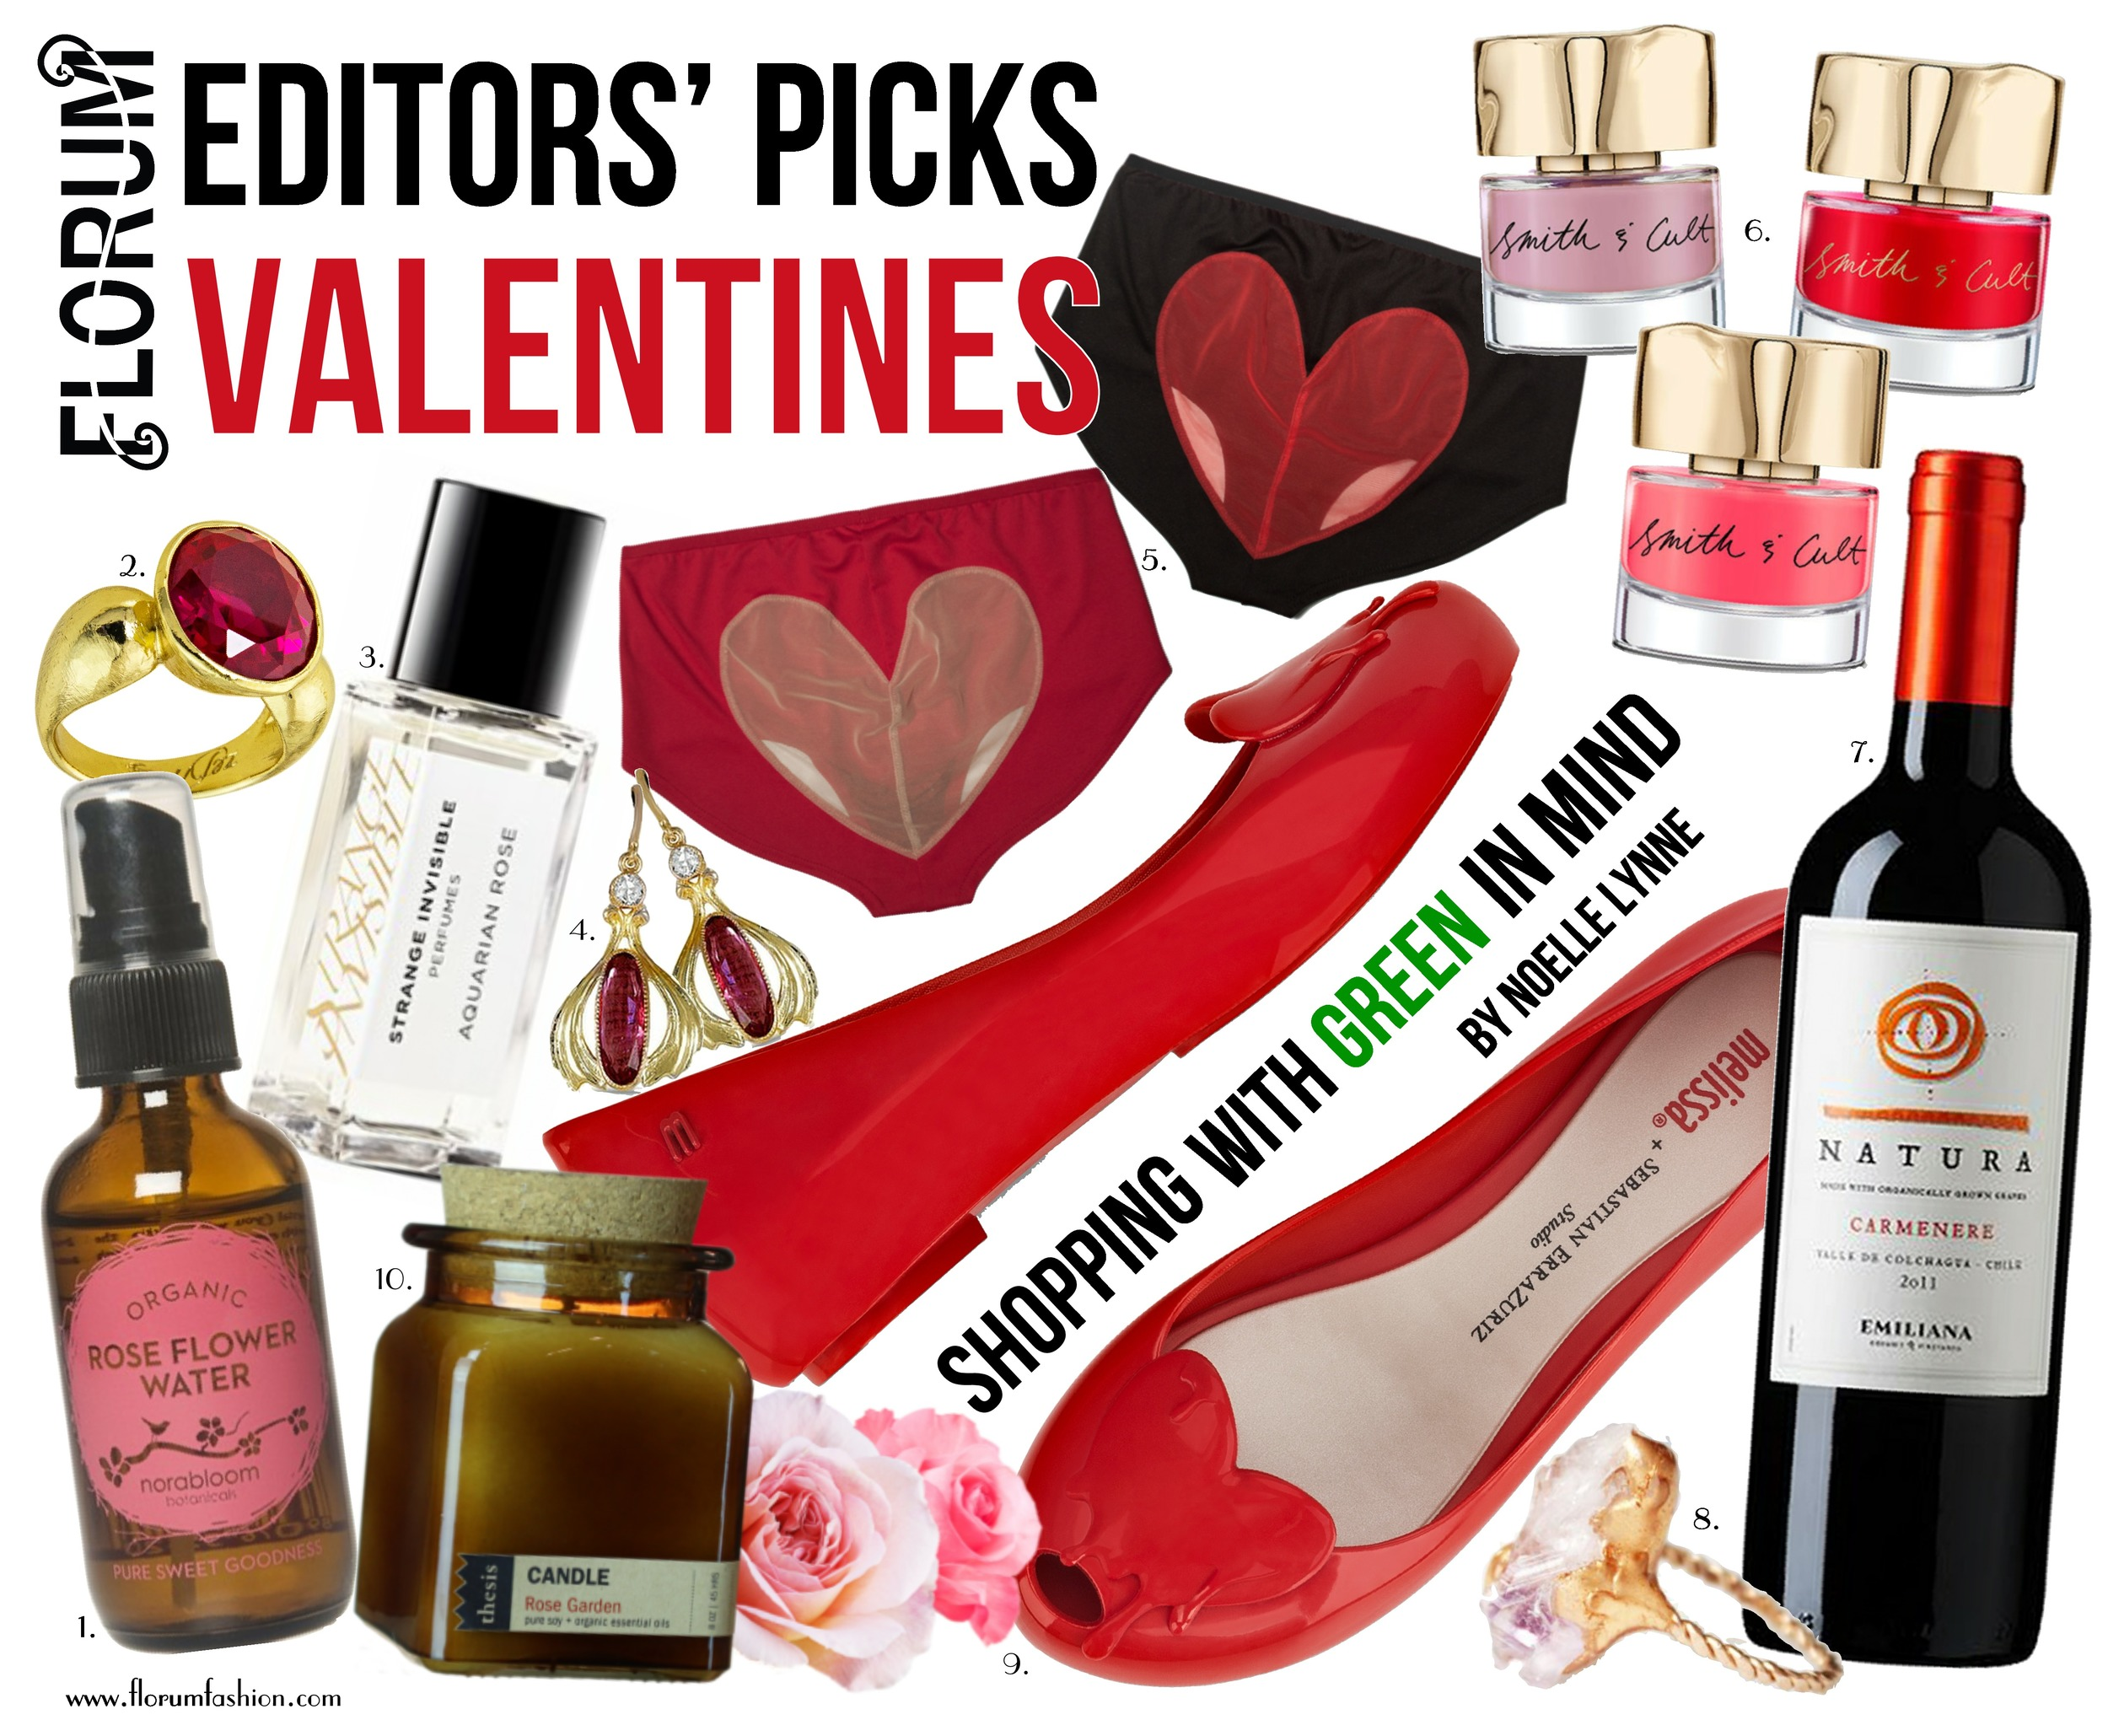 Editors-Valentines-Green-Gift-Guide-by-Noelle-Lynne-Florum-Fashion-page-0.jpg